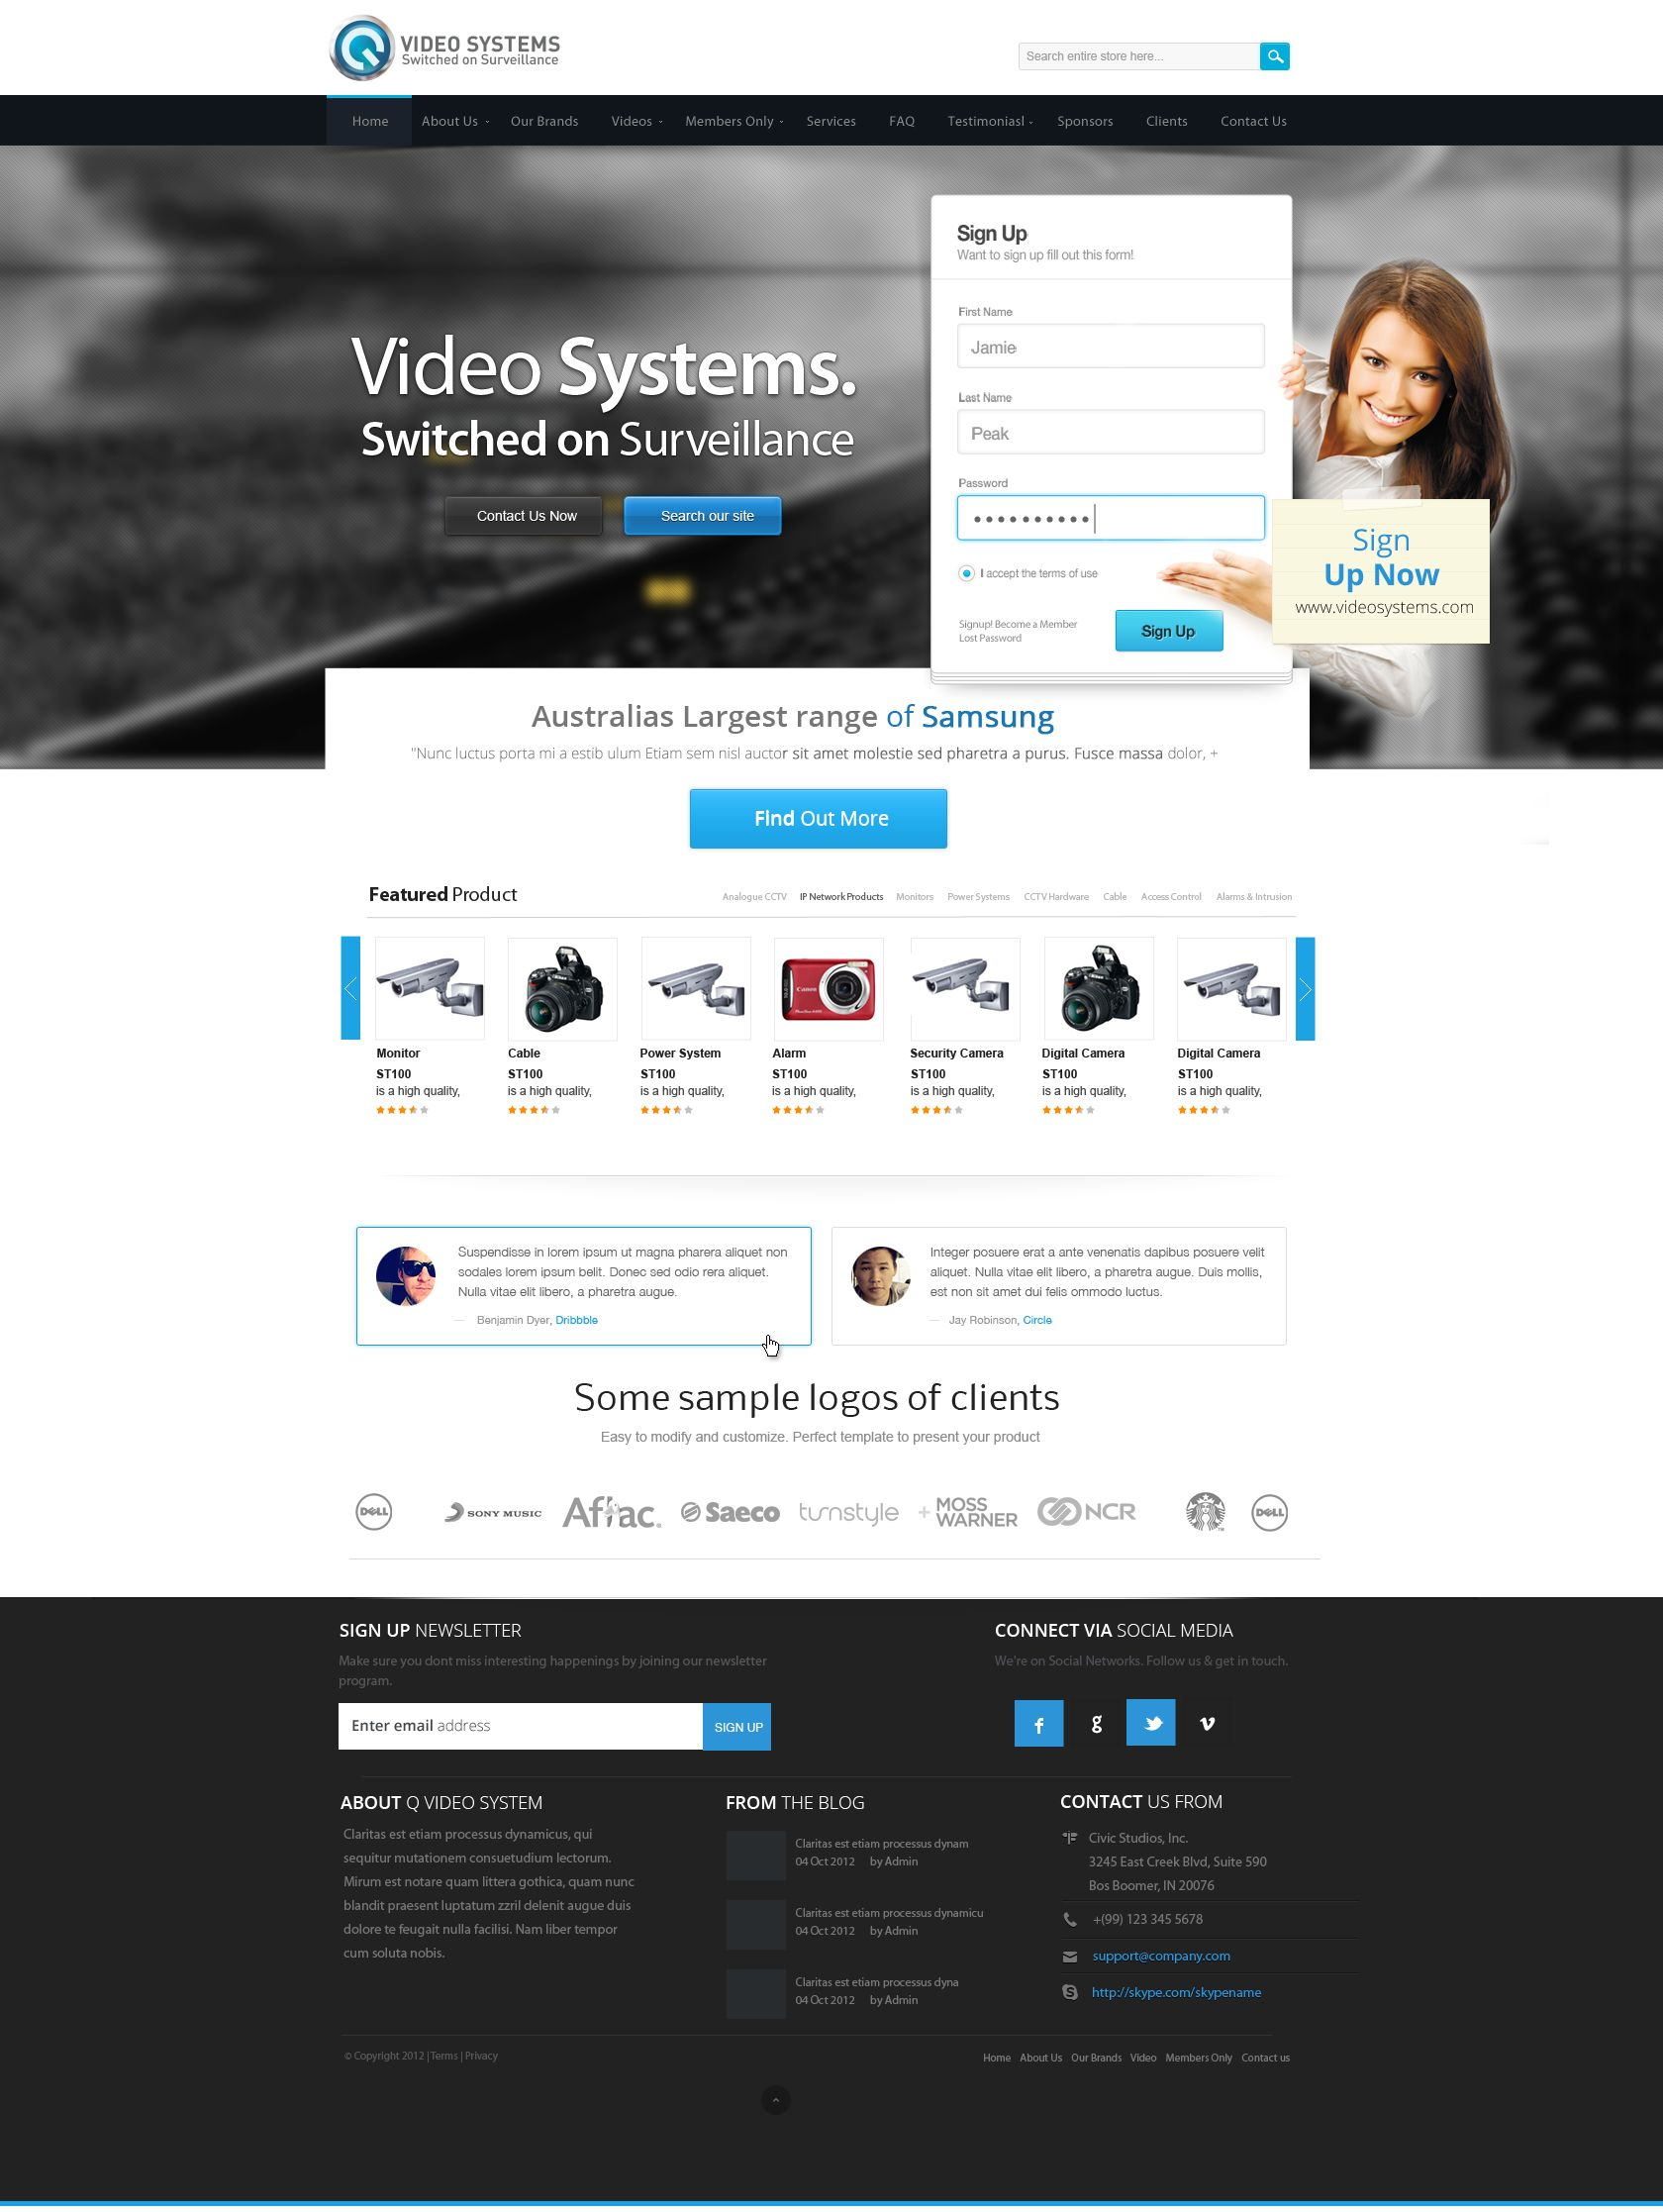 Video System Web Design By Vasiligfx Website Layout Web Design Website Design Layout